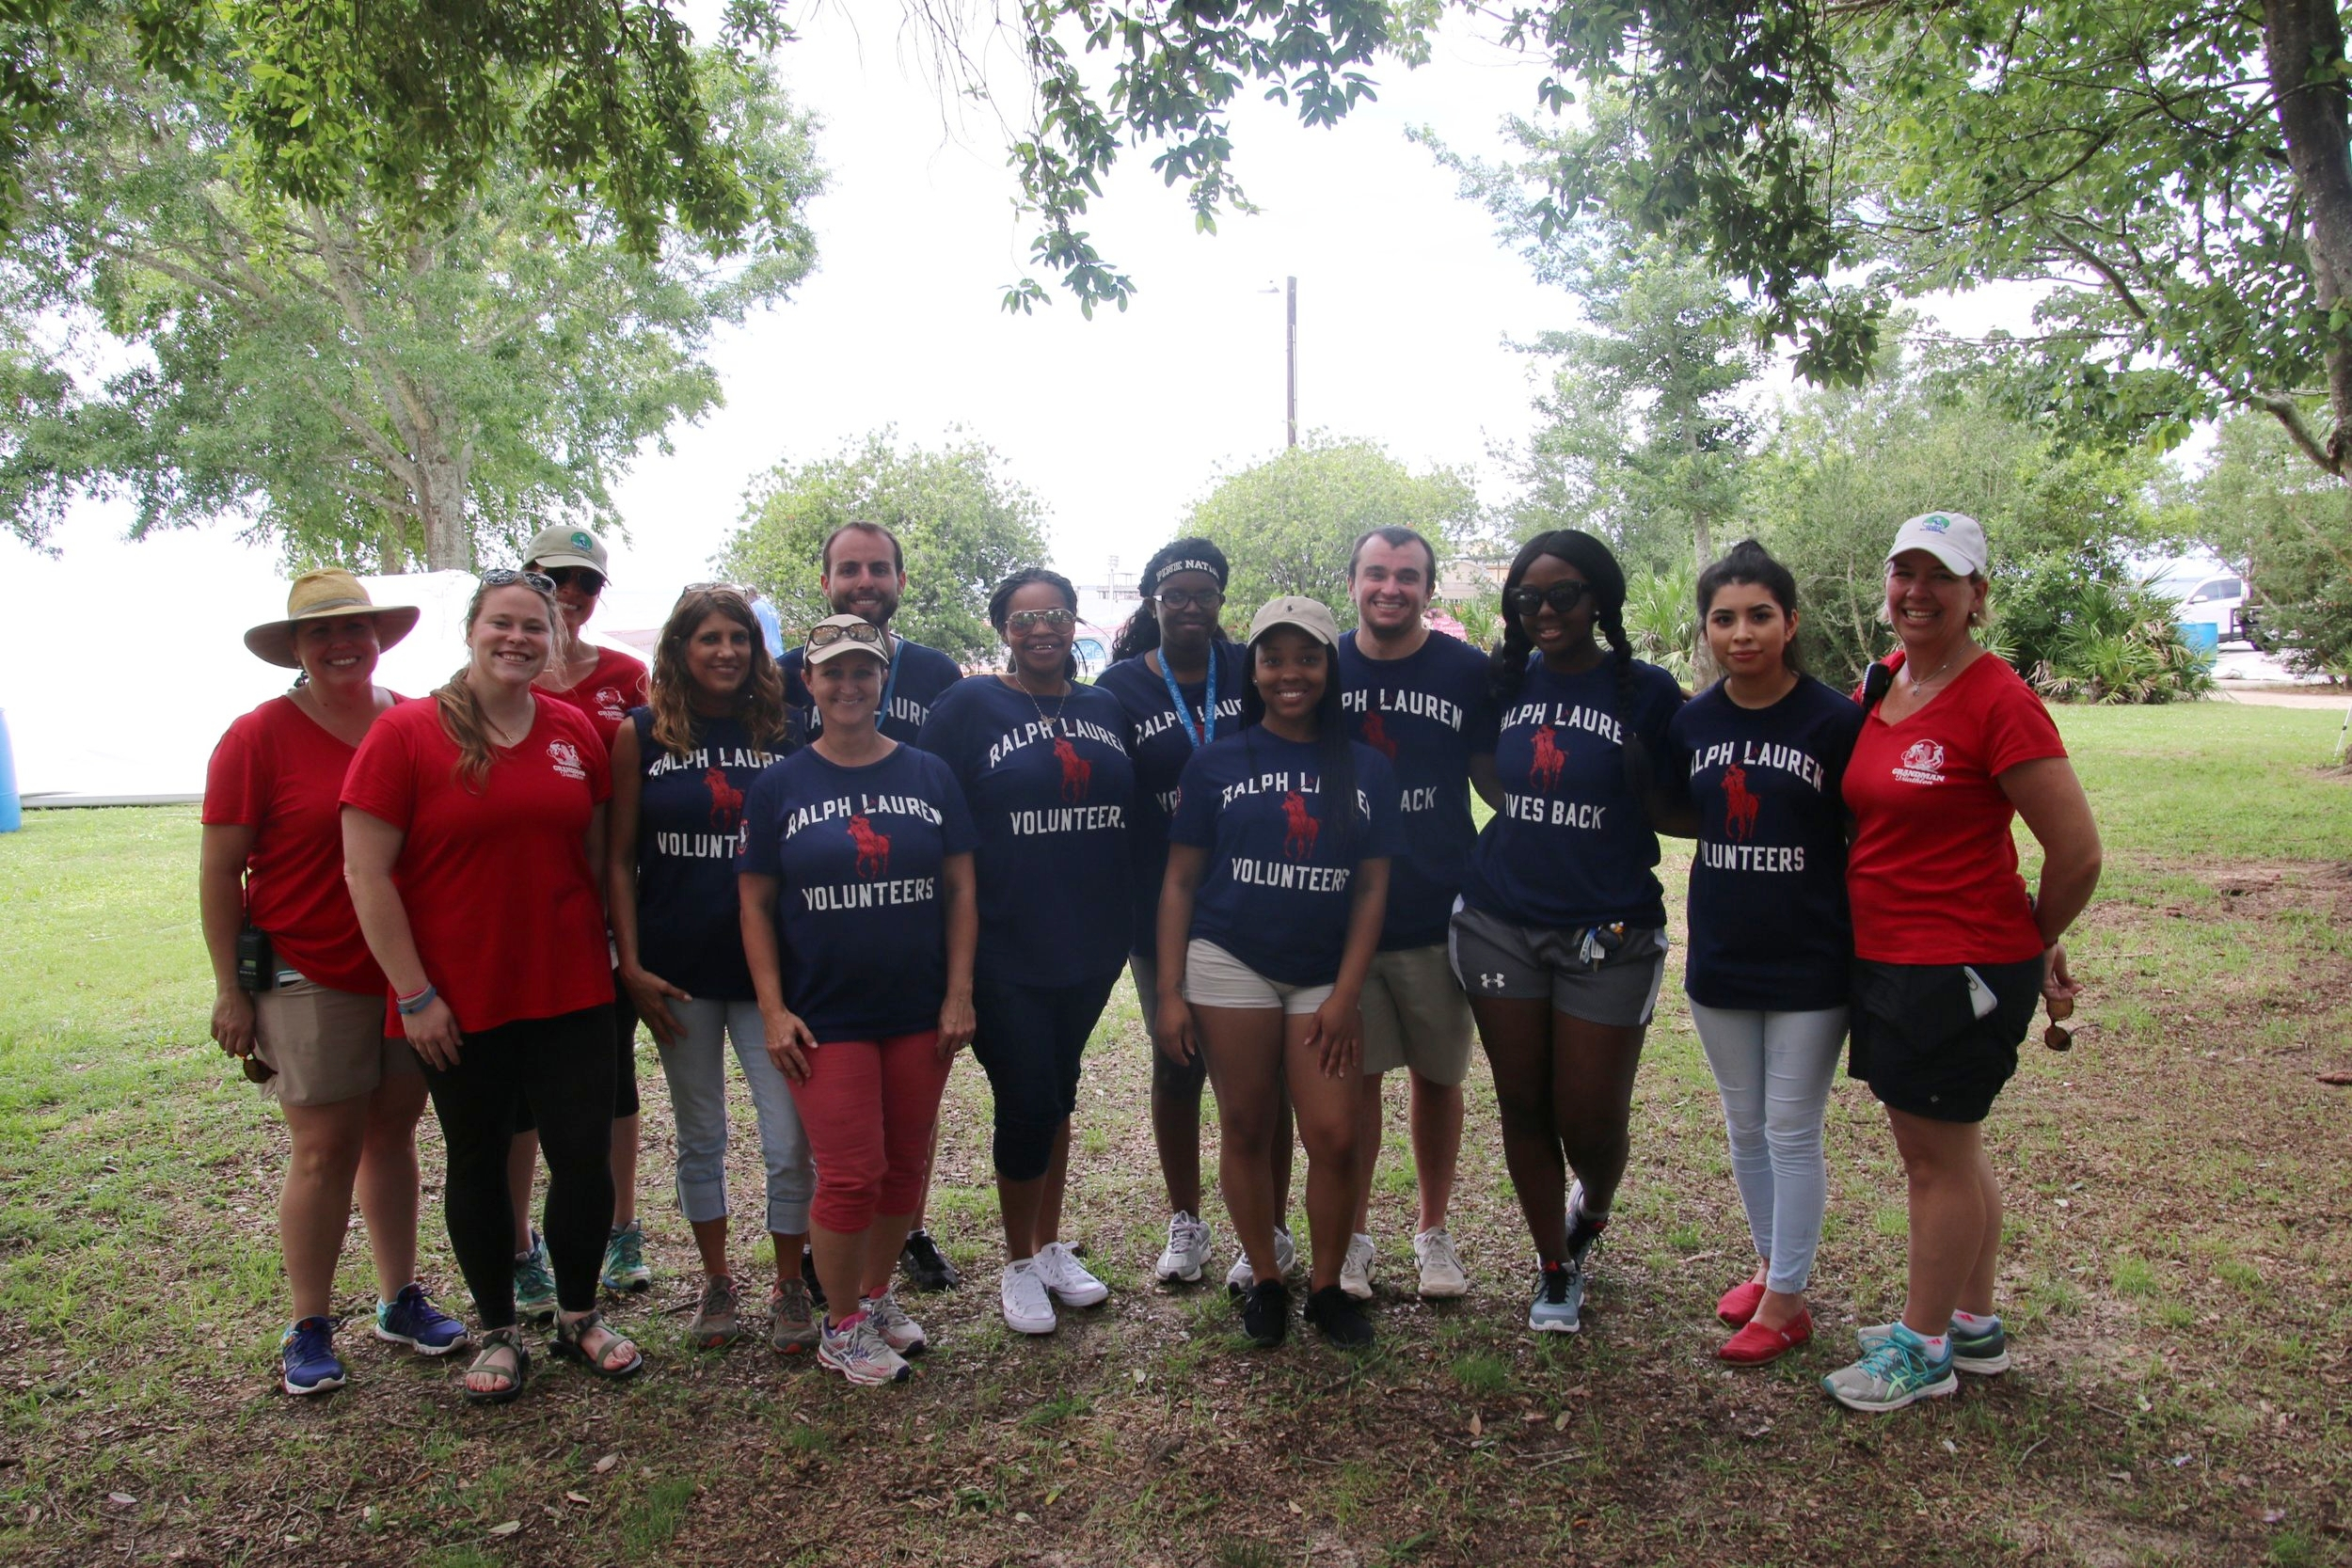 We were lucky to have a wonderful group of volunteers from Ralph Lauren Polo help us set up the race course on Friday!